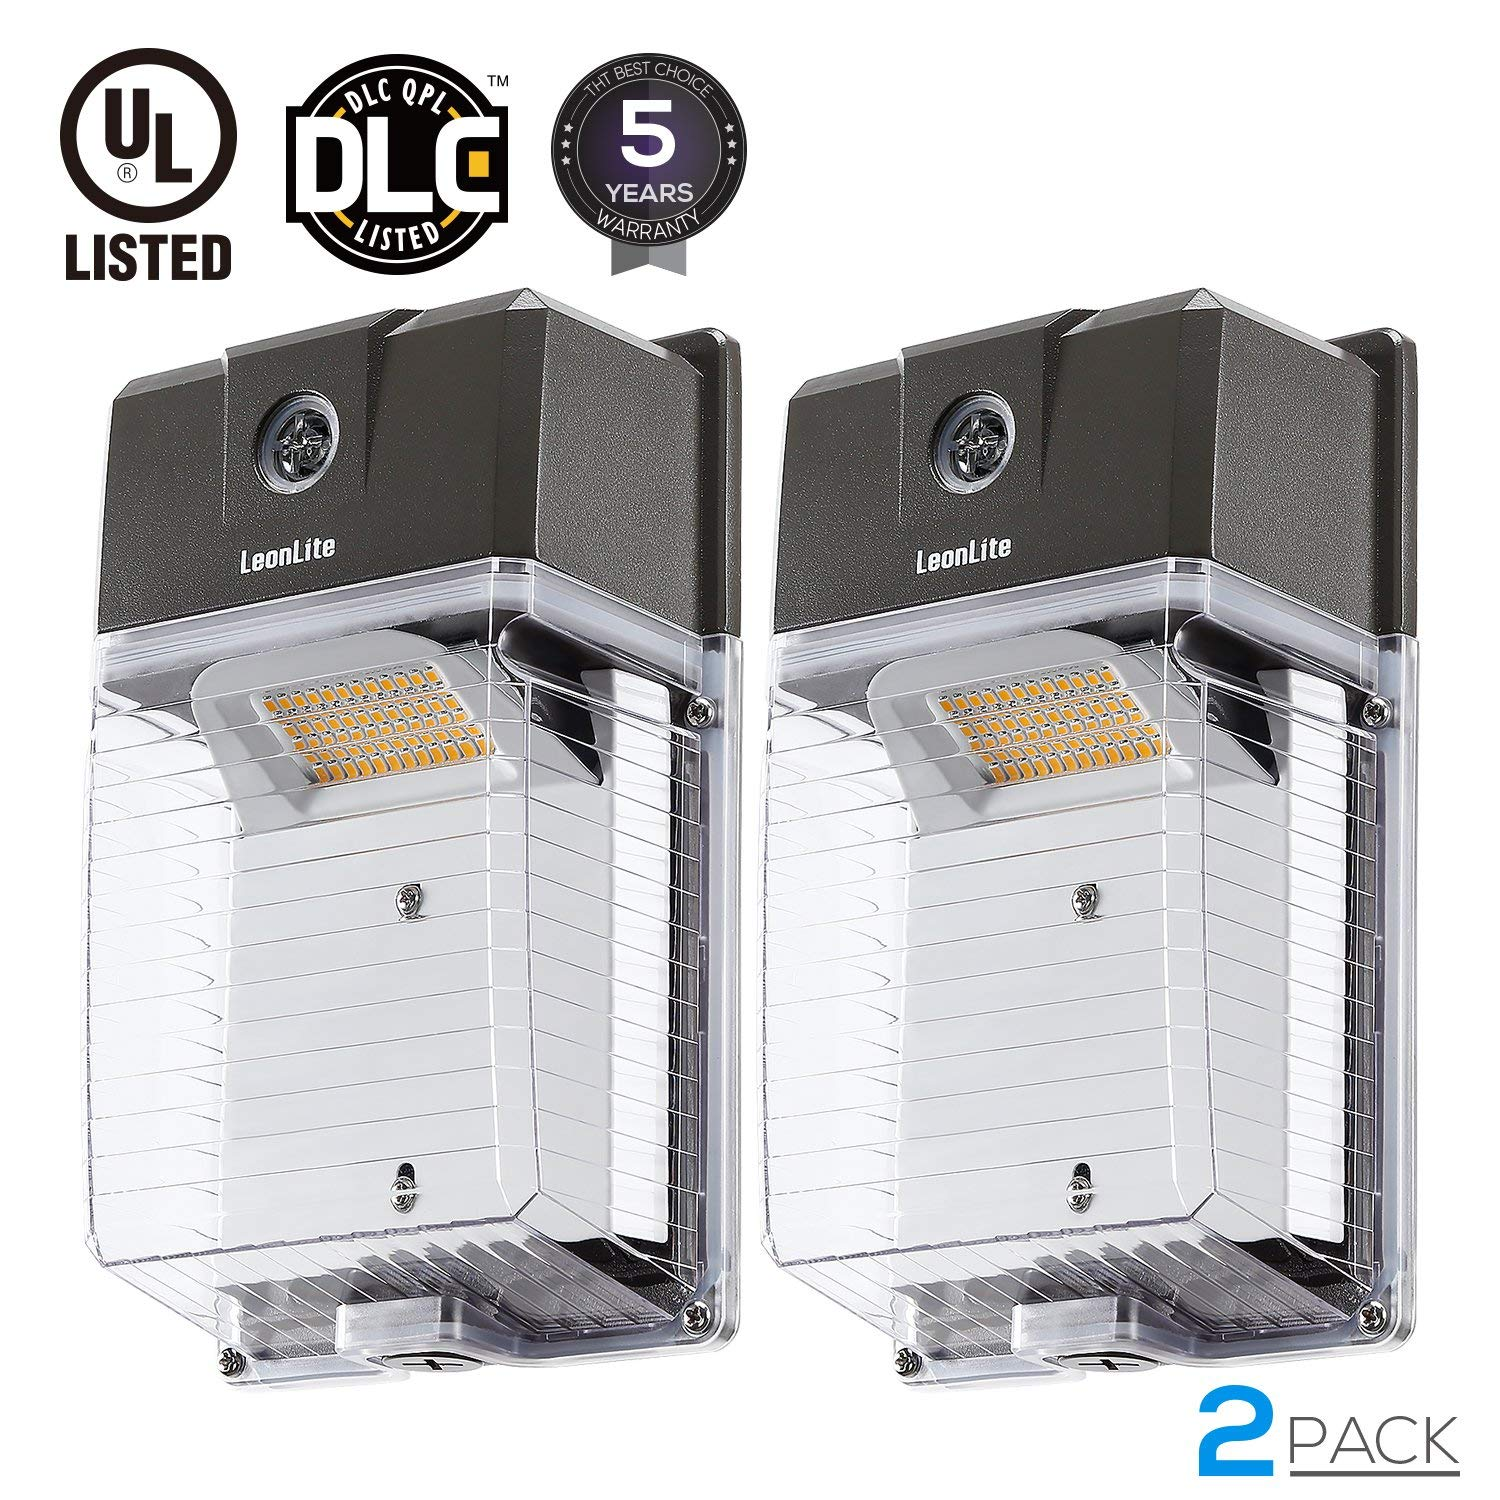 LEONLITE LED Outdoor Wall Lights Fixtures With Photocell, 30W Outdoor LED  Wall Pack Light, 5000K Daylight, Pack Of 2   Walmart.com